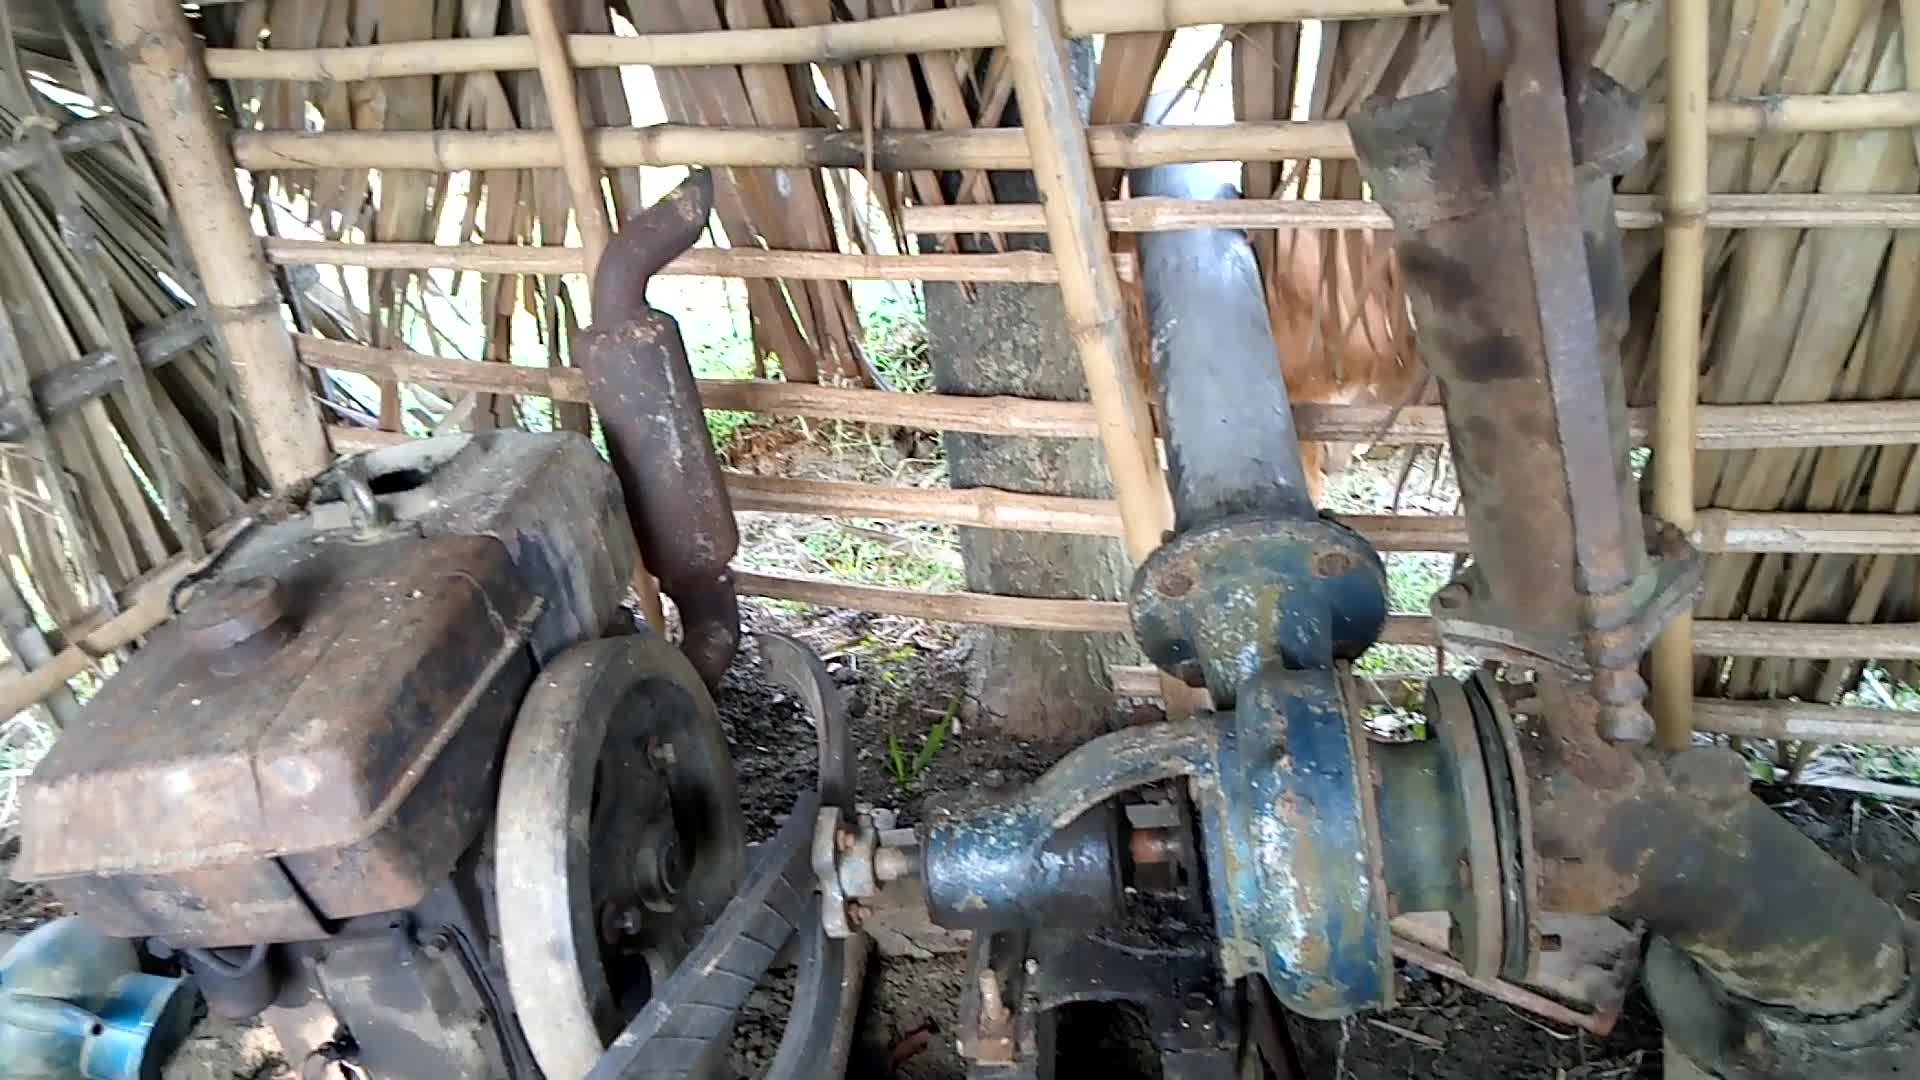 Irrigation machines used in agriculture